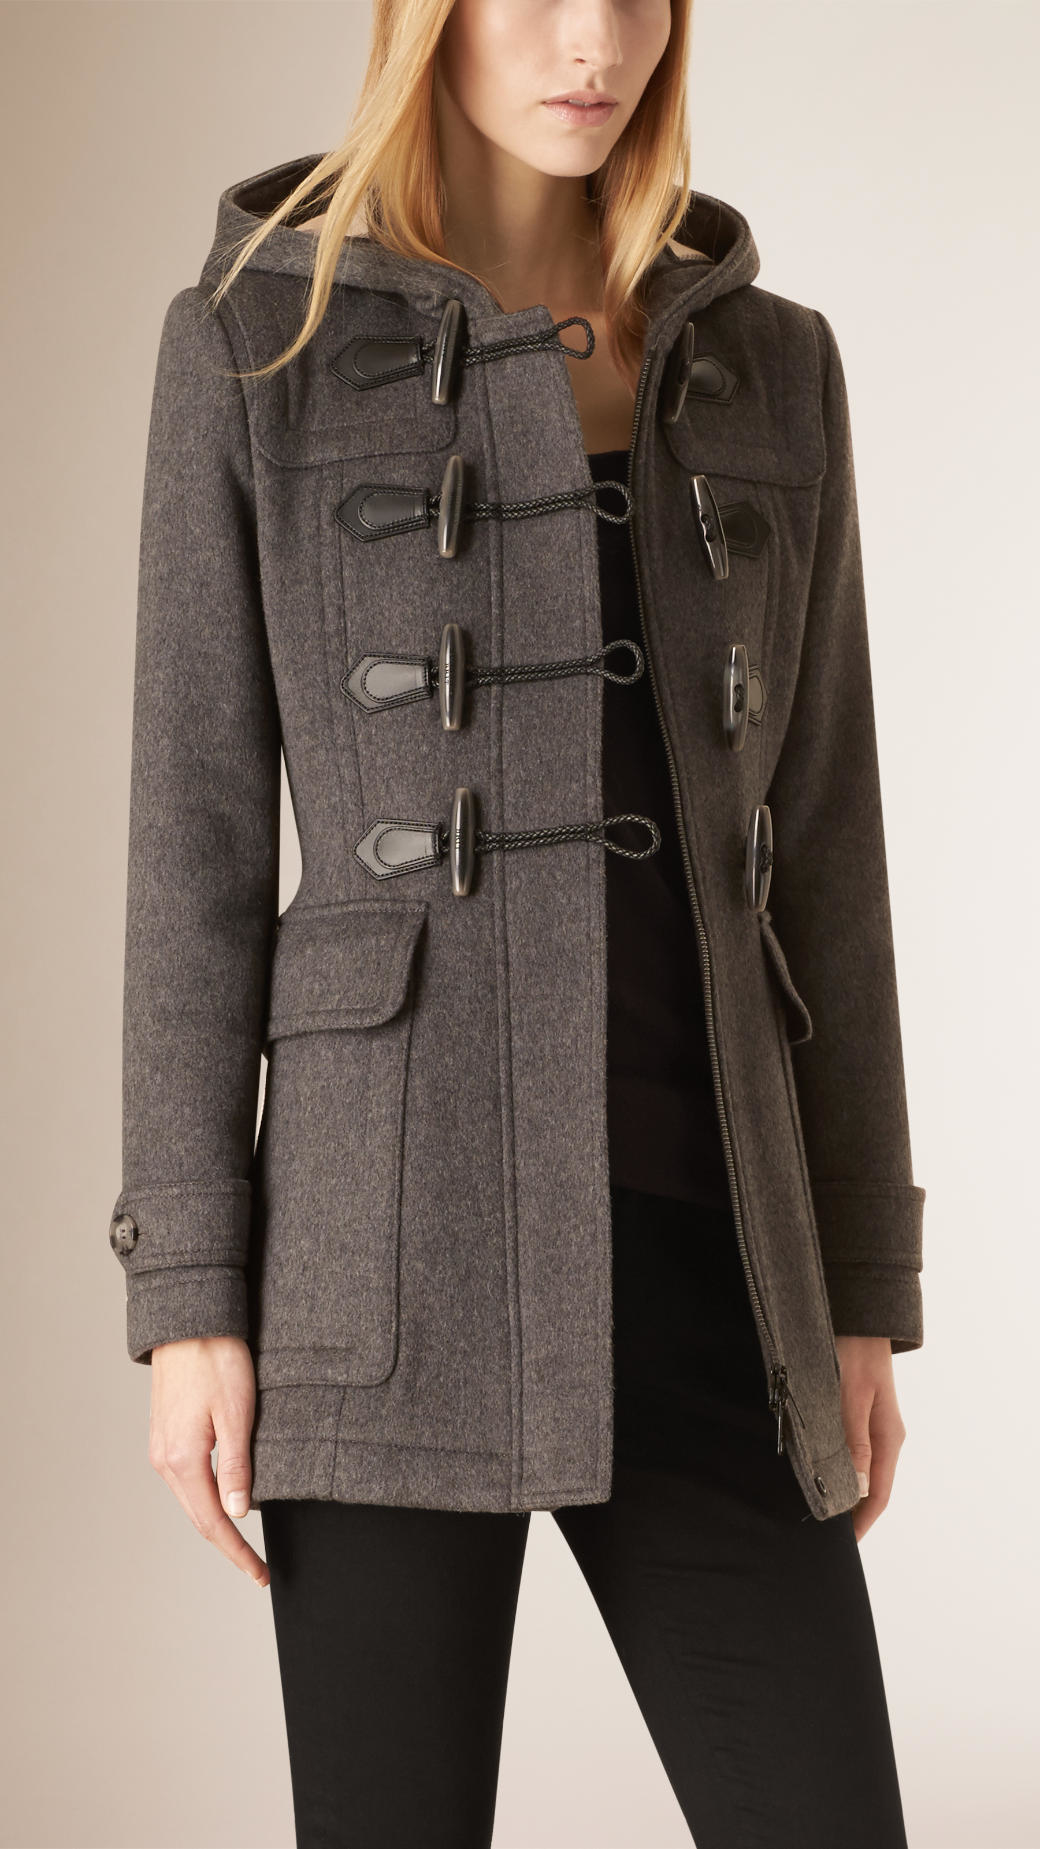 Burberry Fitted Wool Duffle Coat in Gray | Lyst